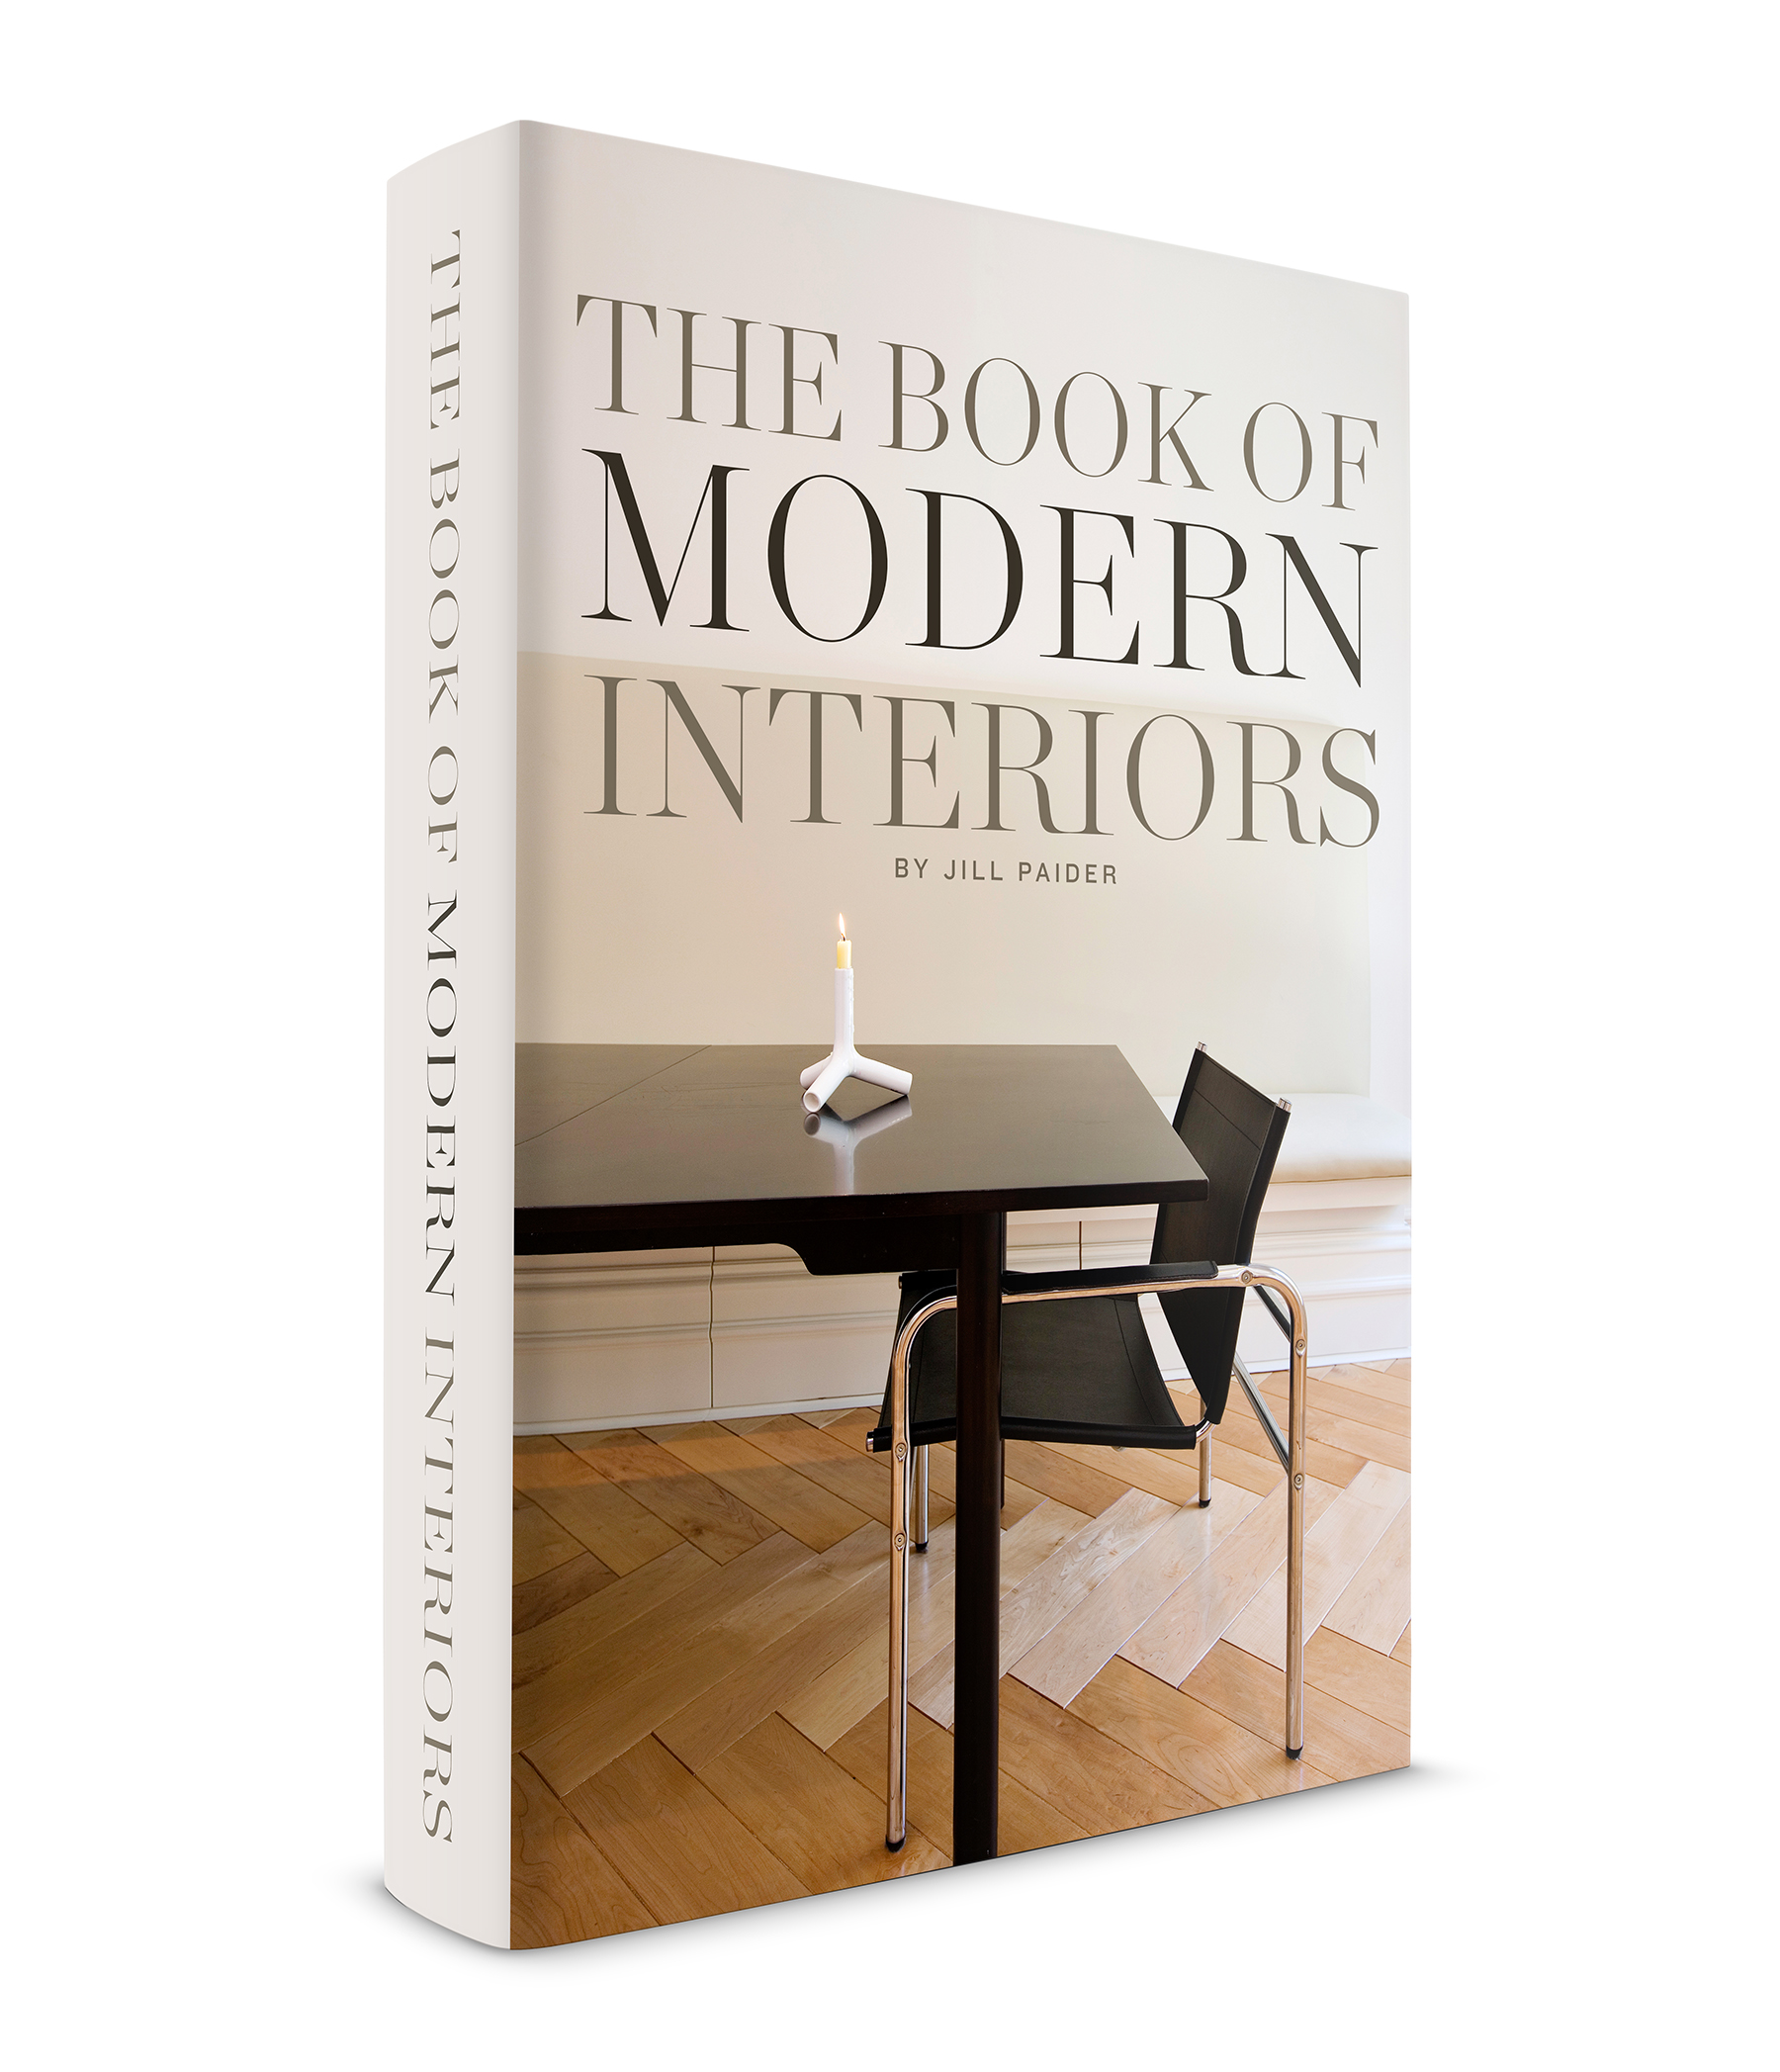 THE BOOK OF MODERN INTERIORS